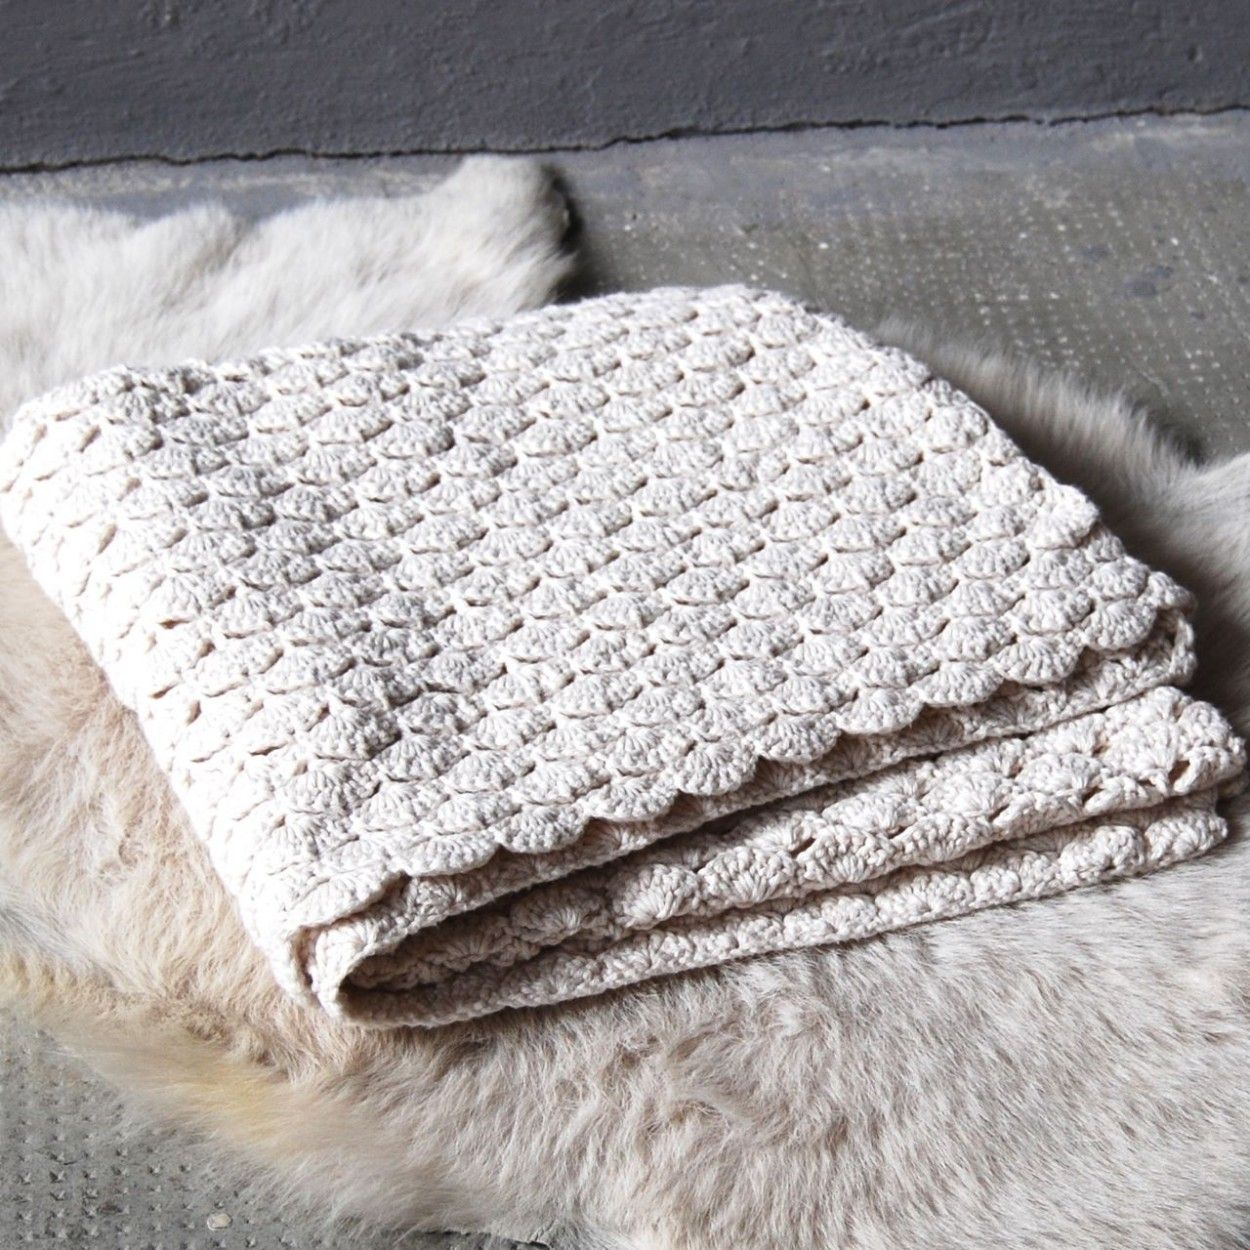 cozy knitted blanket ♥